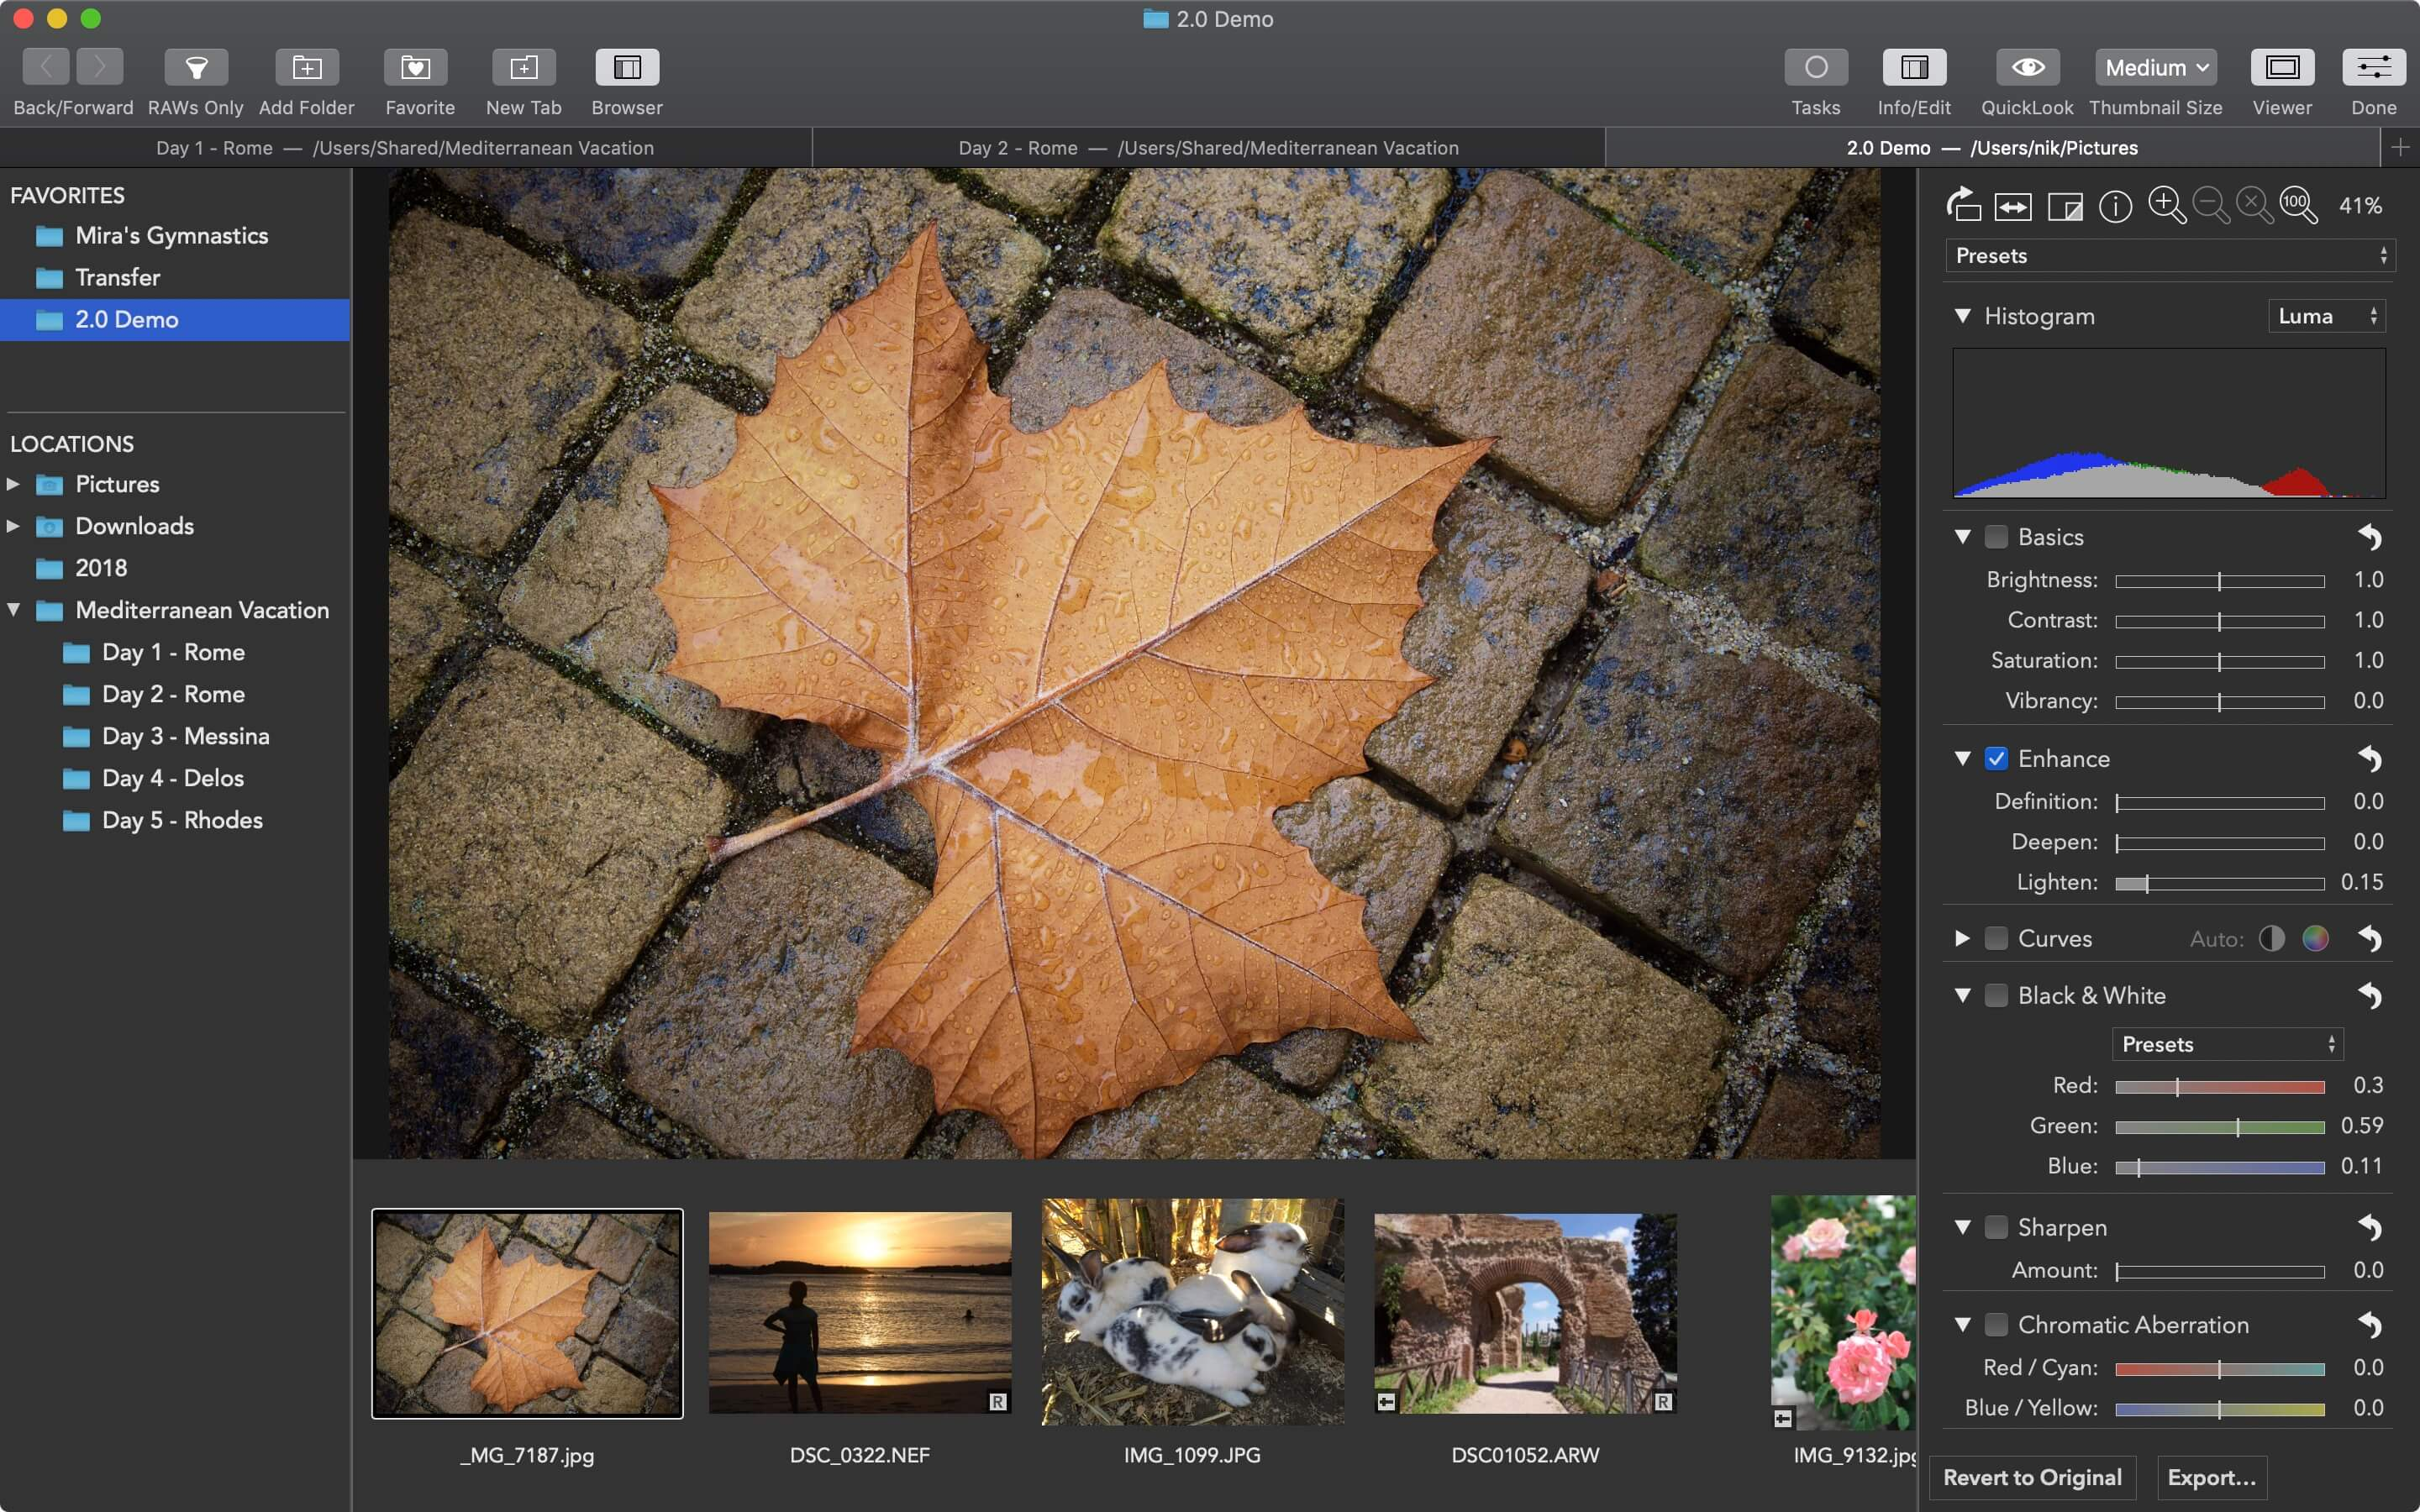 The Best Photo Editor On Mac